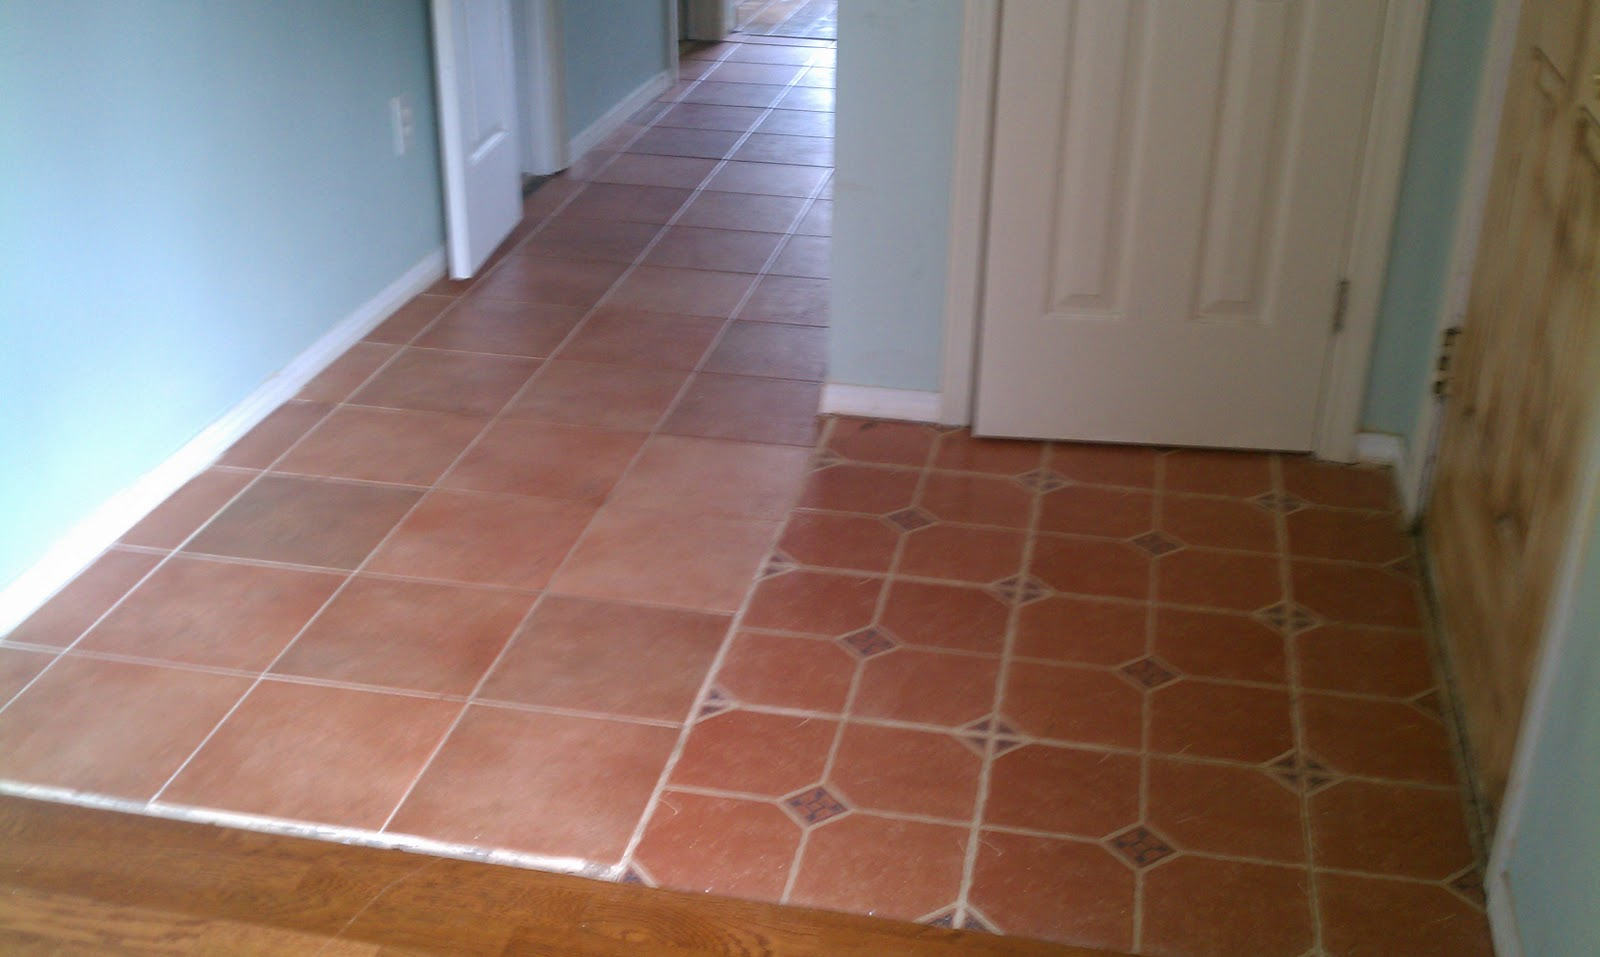 Car two llc november 2011 Different tiles in different rooms